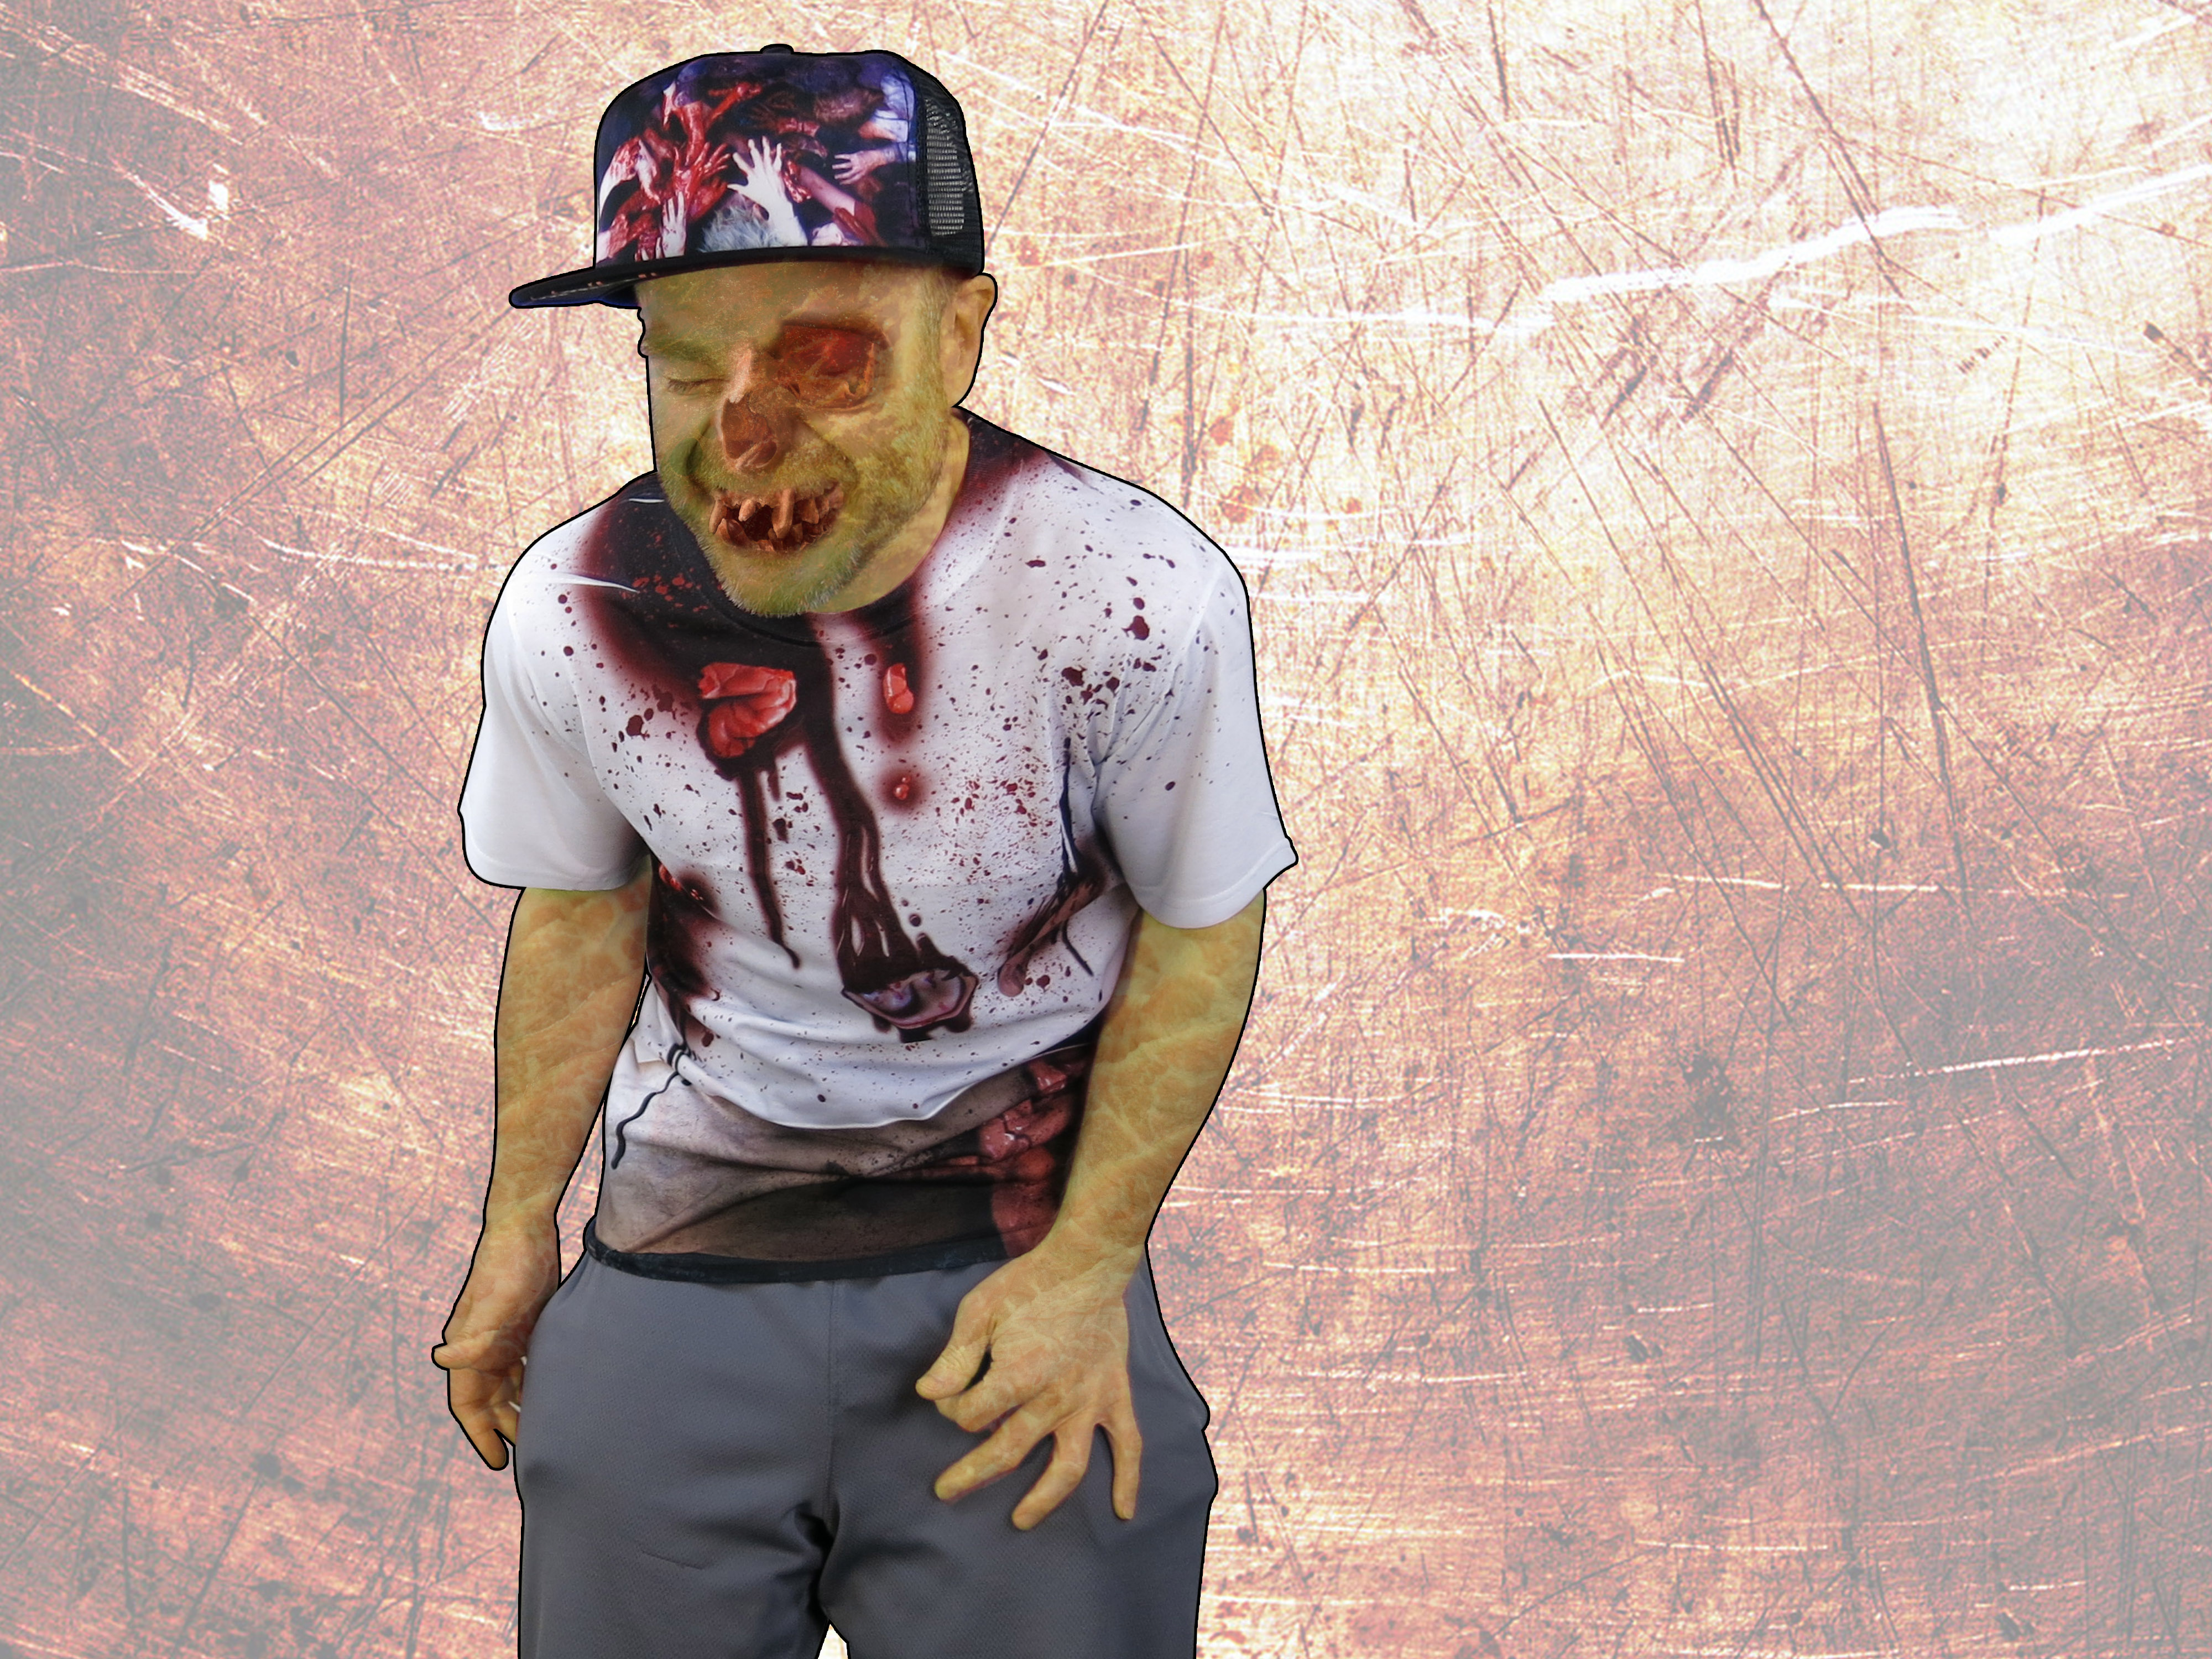 Celebrate The Walking Dead Season 6 with this awesome Walking Dead Merchandise!